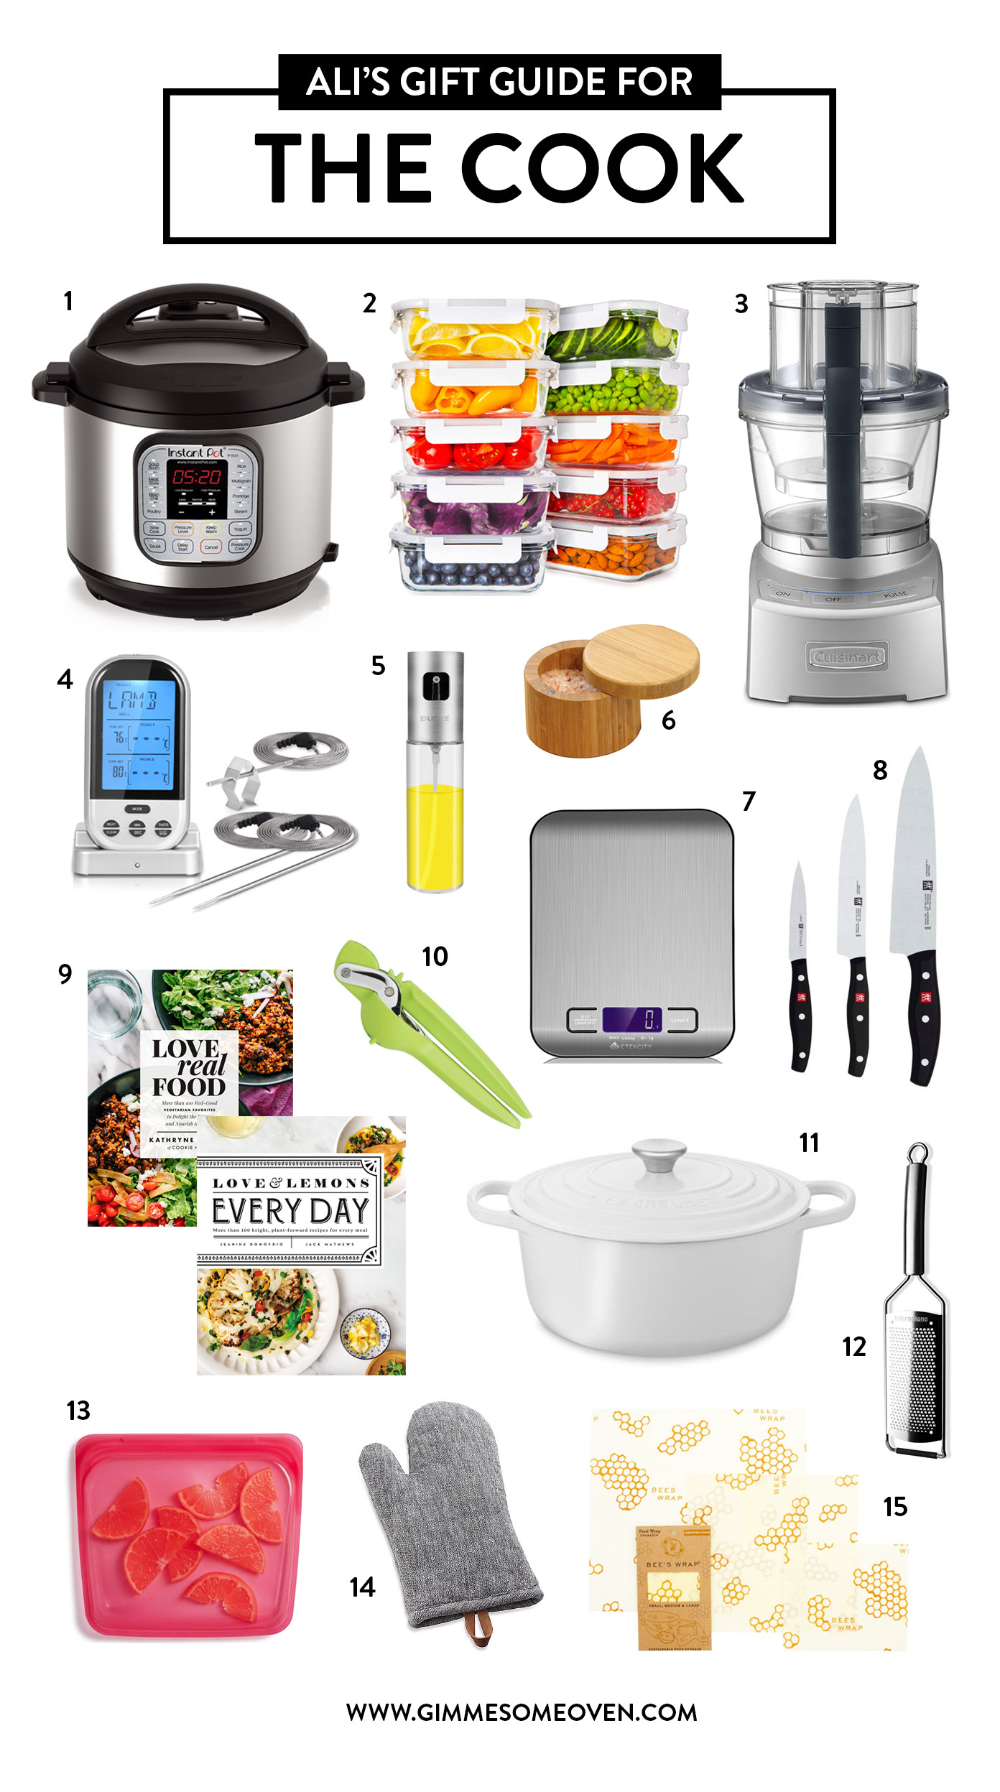 Holiday Gift Guide For THE COOK | Lots of fun gift ideas for friends who love cooking, entertaining, hosting, meal prep, gathering people in the kitchen and around the table. | gimmesomeoven.com #gift #guide #hostess #entertaining #home #decor #tabletop #cook #kitchen